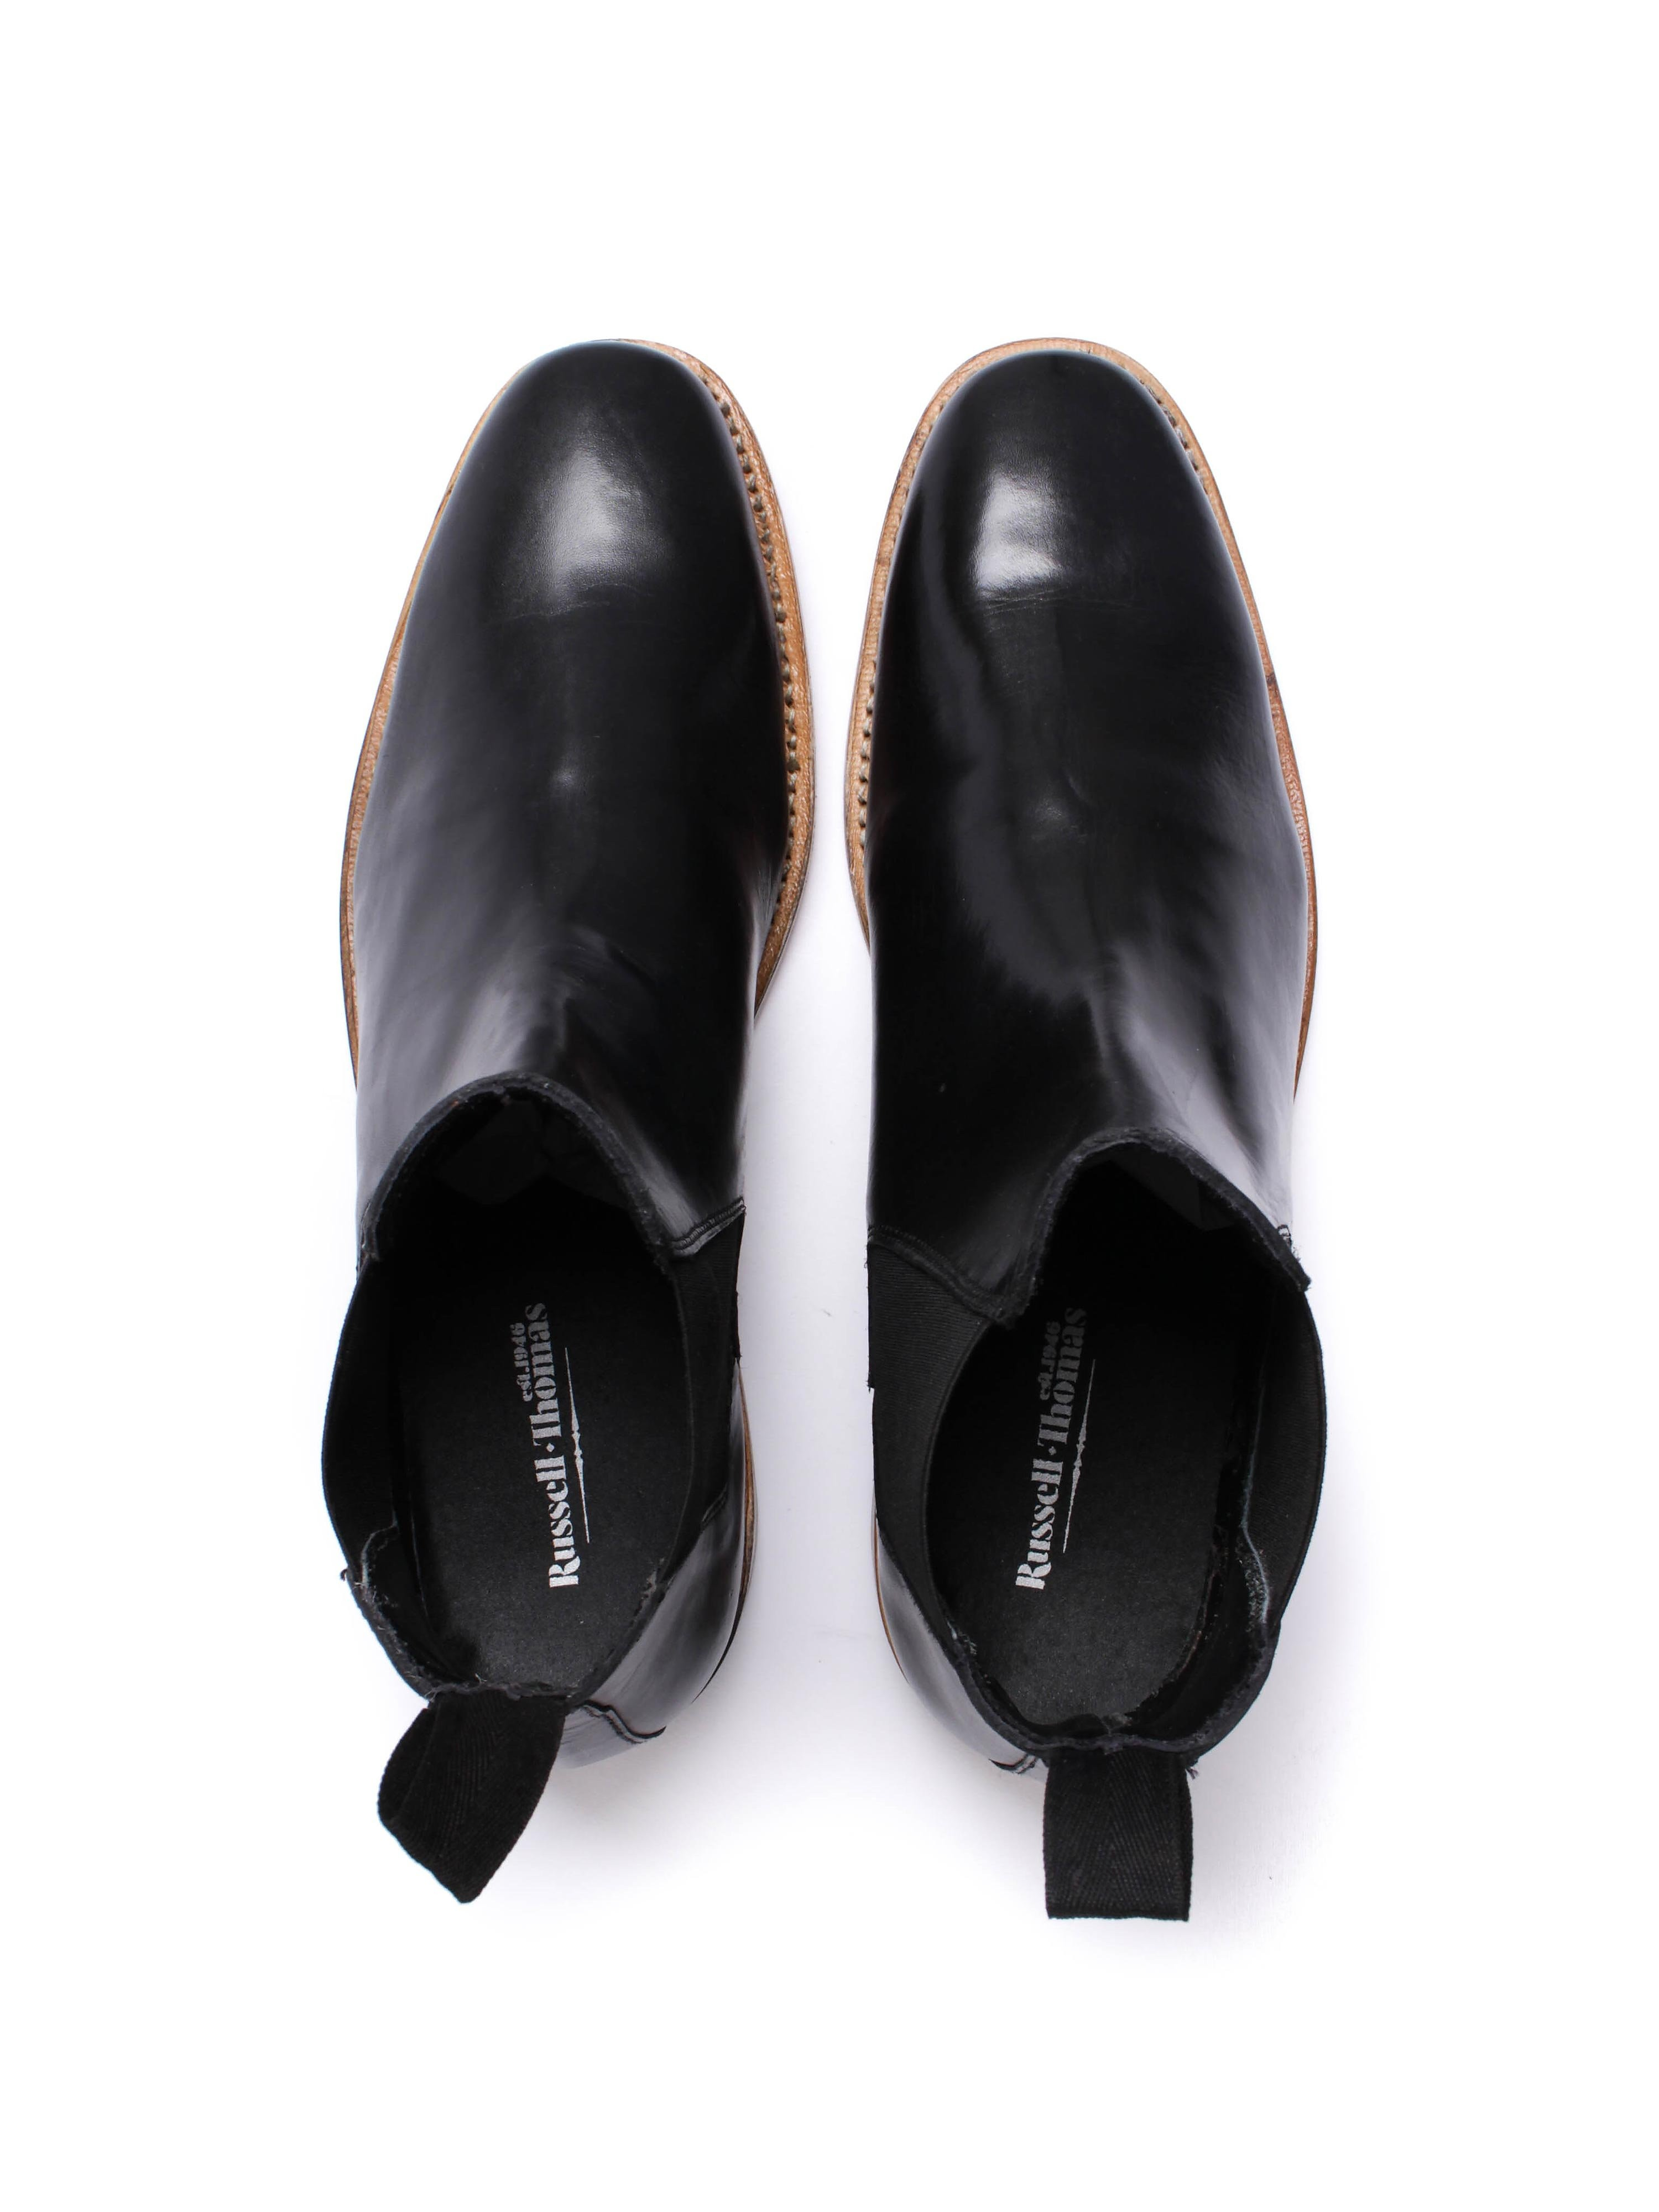 Russell Thomas Mens Black Leather Chelsea Boots